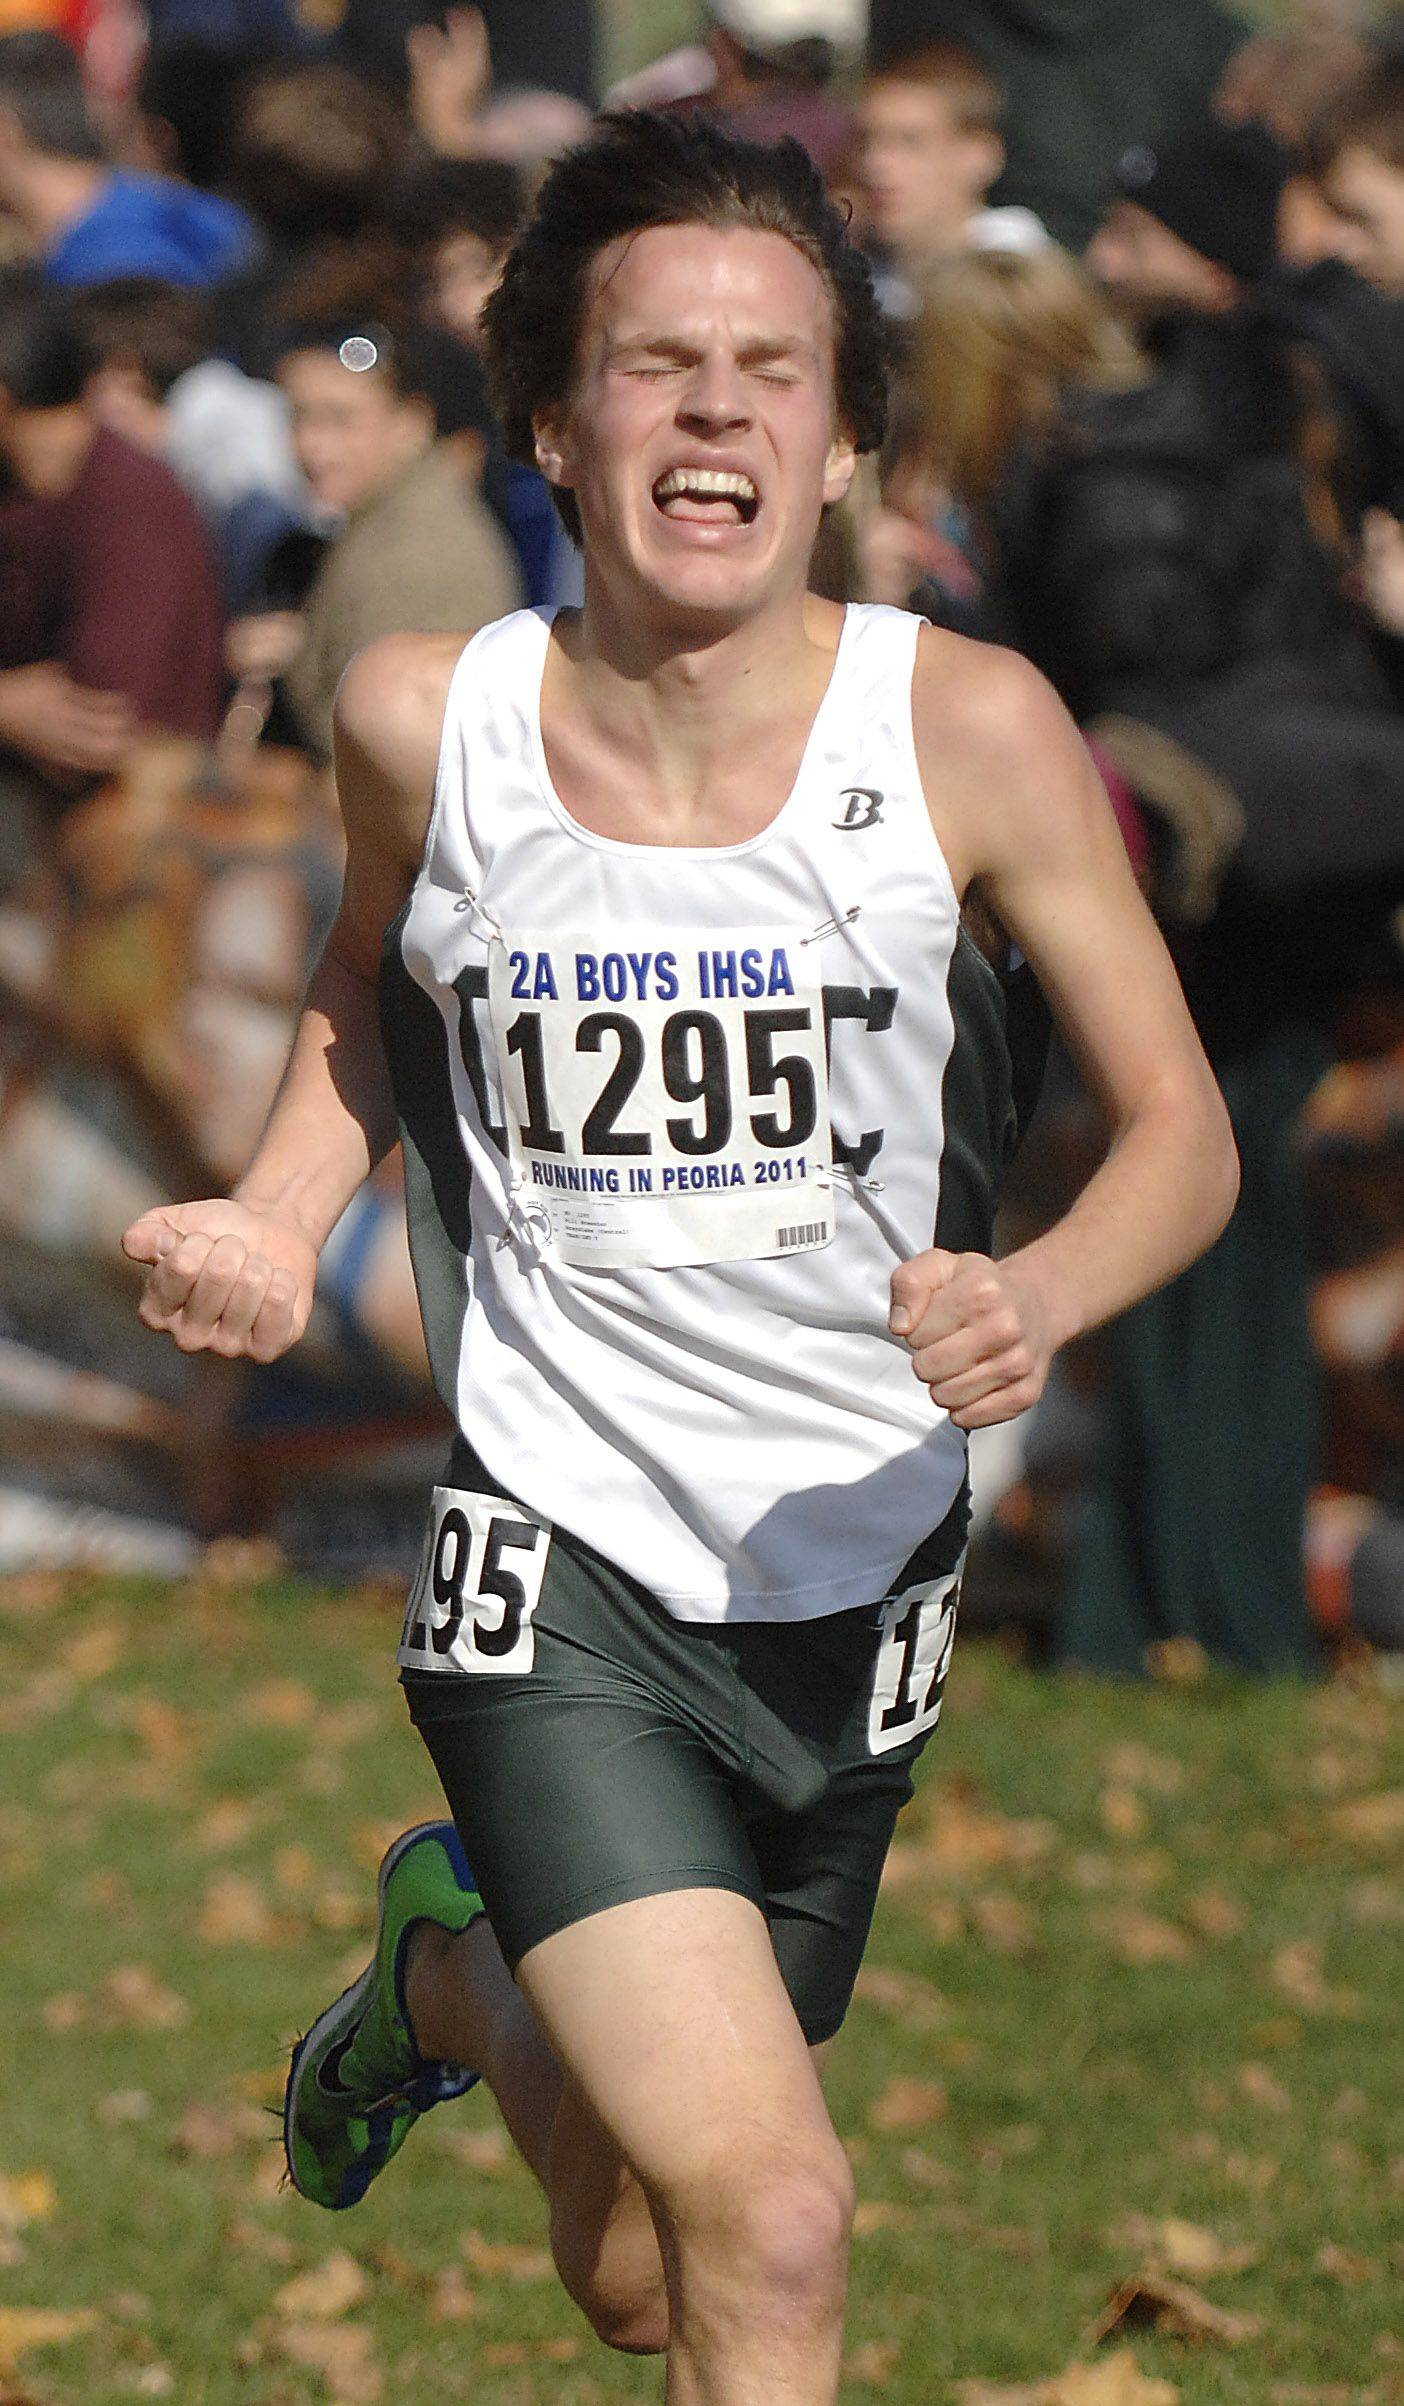 Grayslake Central's Will Brewster nears the finish line in the 2A state cross country final. Brewster took 8th place with a time of 14:47.